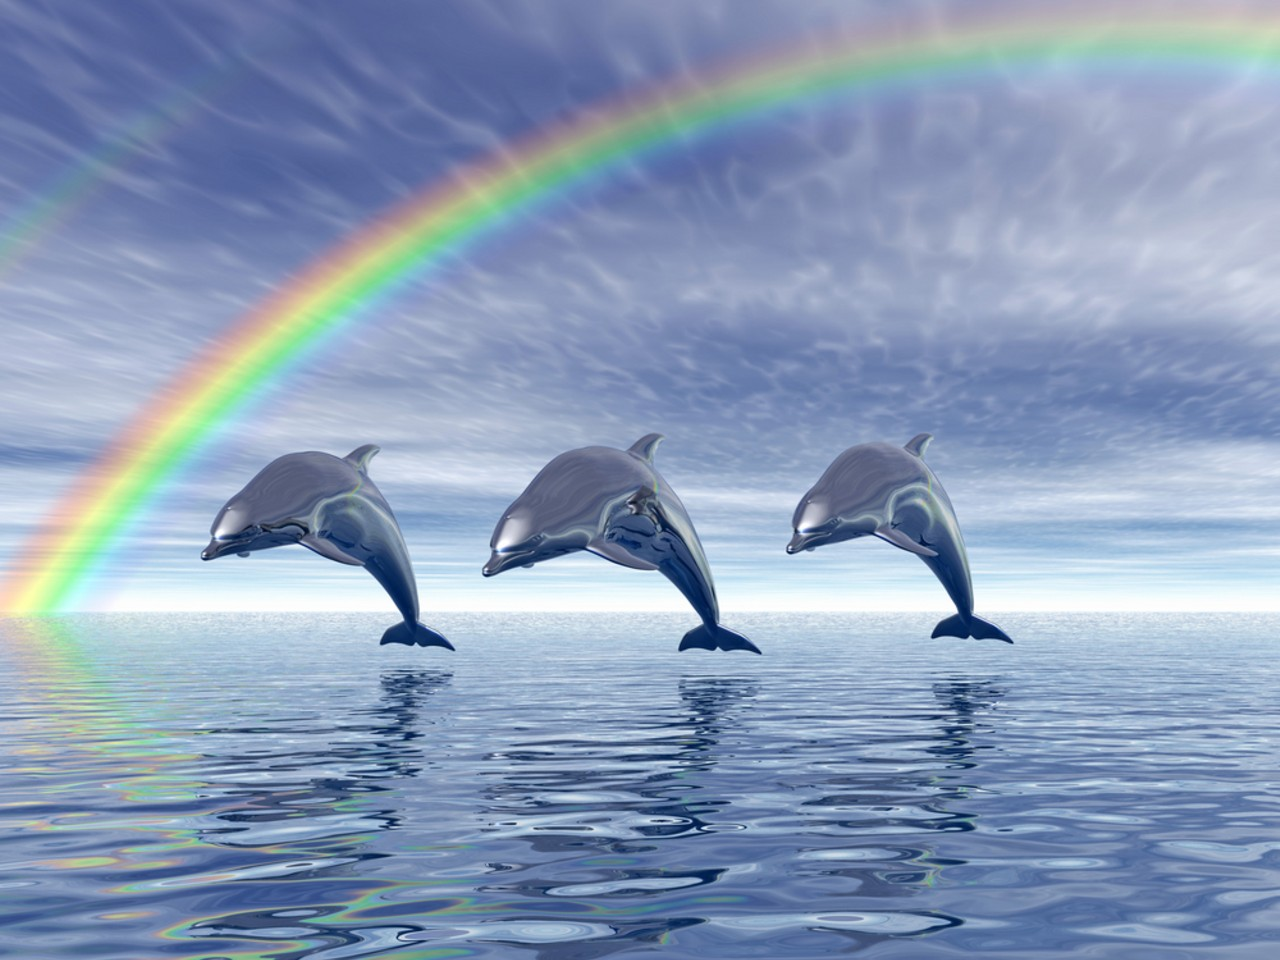 Dolphin Wallpaper wallpaper Dolphin Wallpaper hd wallpaper 1280x960